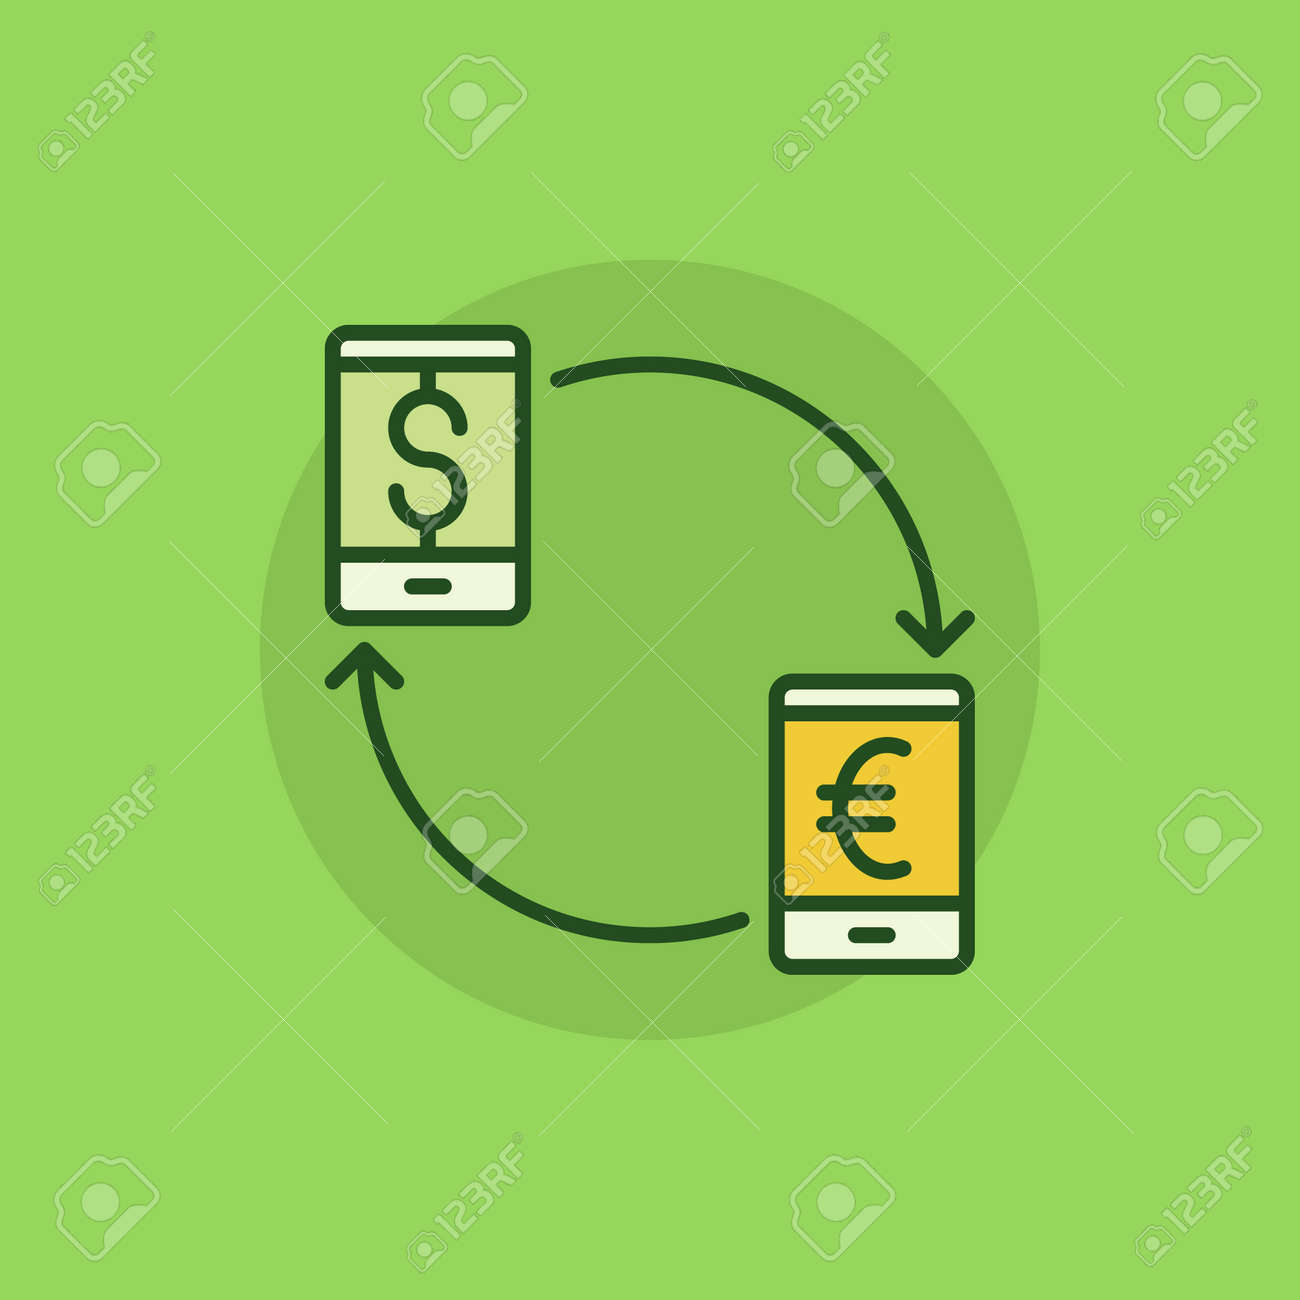 Smartphone currency converter colorful icon eur to usd convert smartphone currency converter colorful icon eur to usd convert concept flat symbol stock vector biocorpaavc Gallery